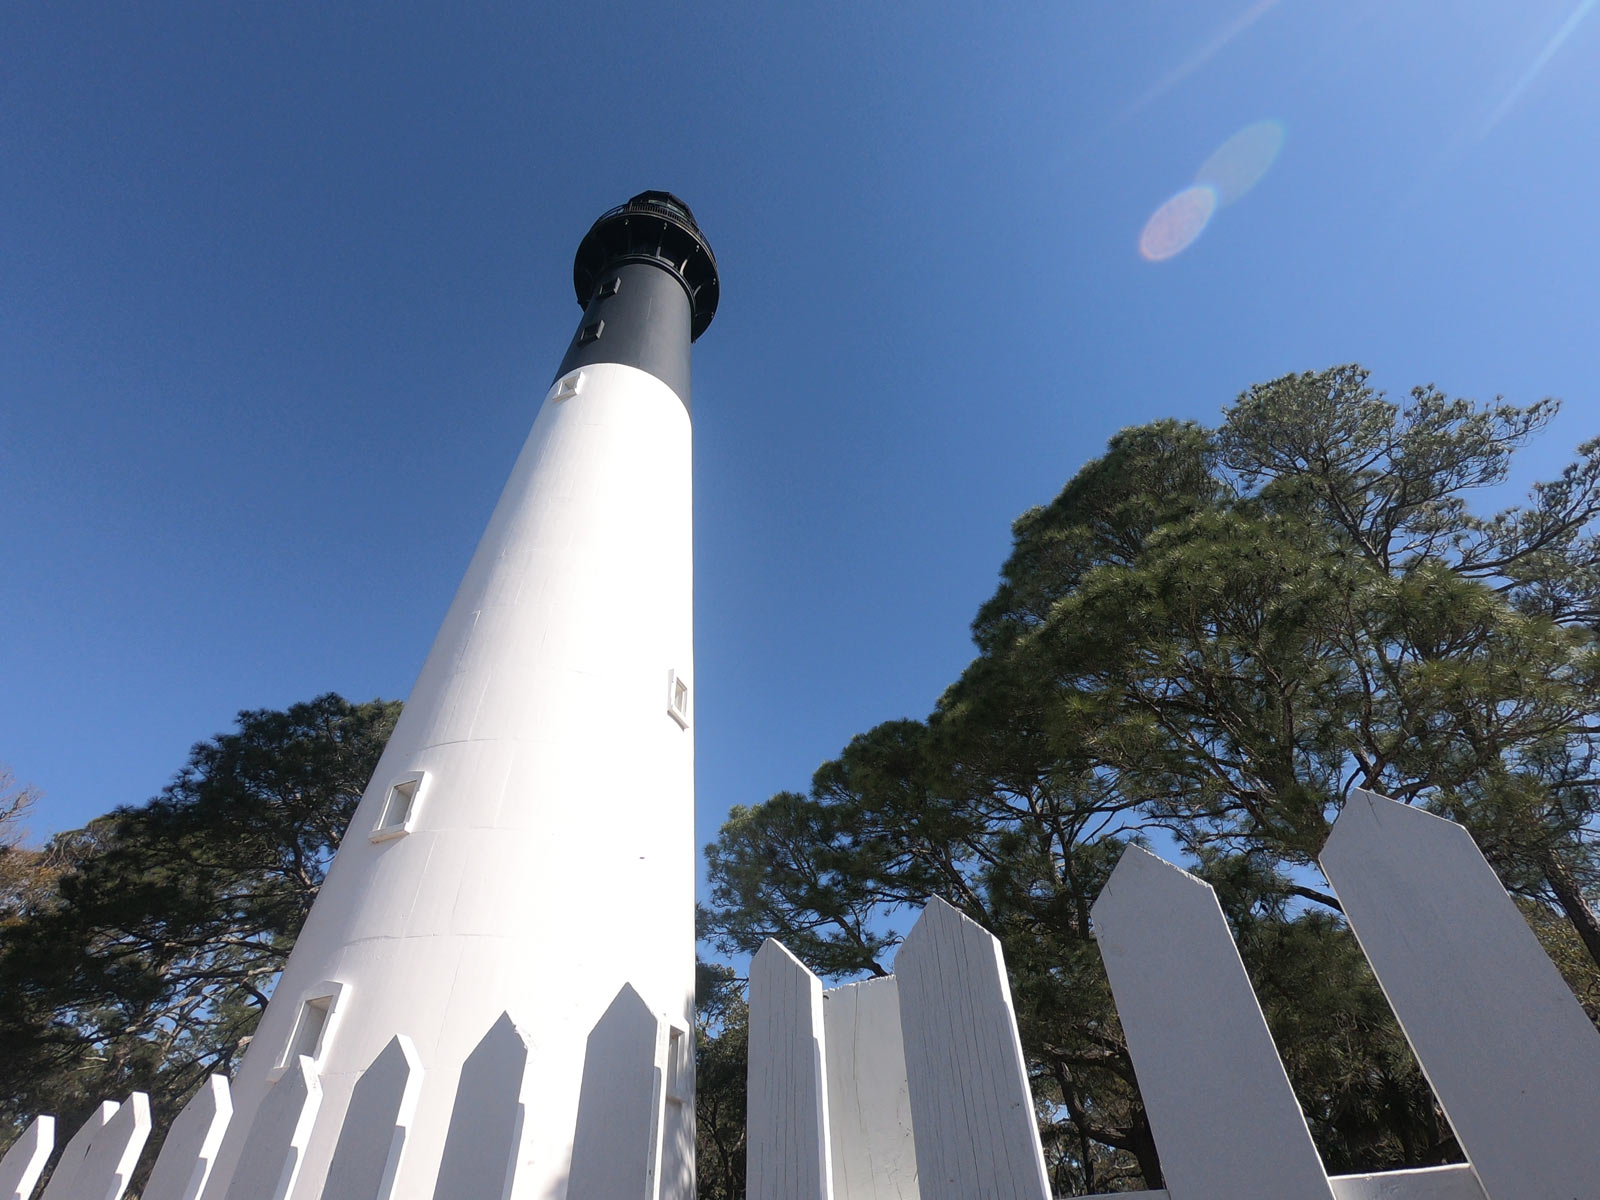 Upward view of the white and black lighthouse at Hunting Island State Park, South Carolina